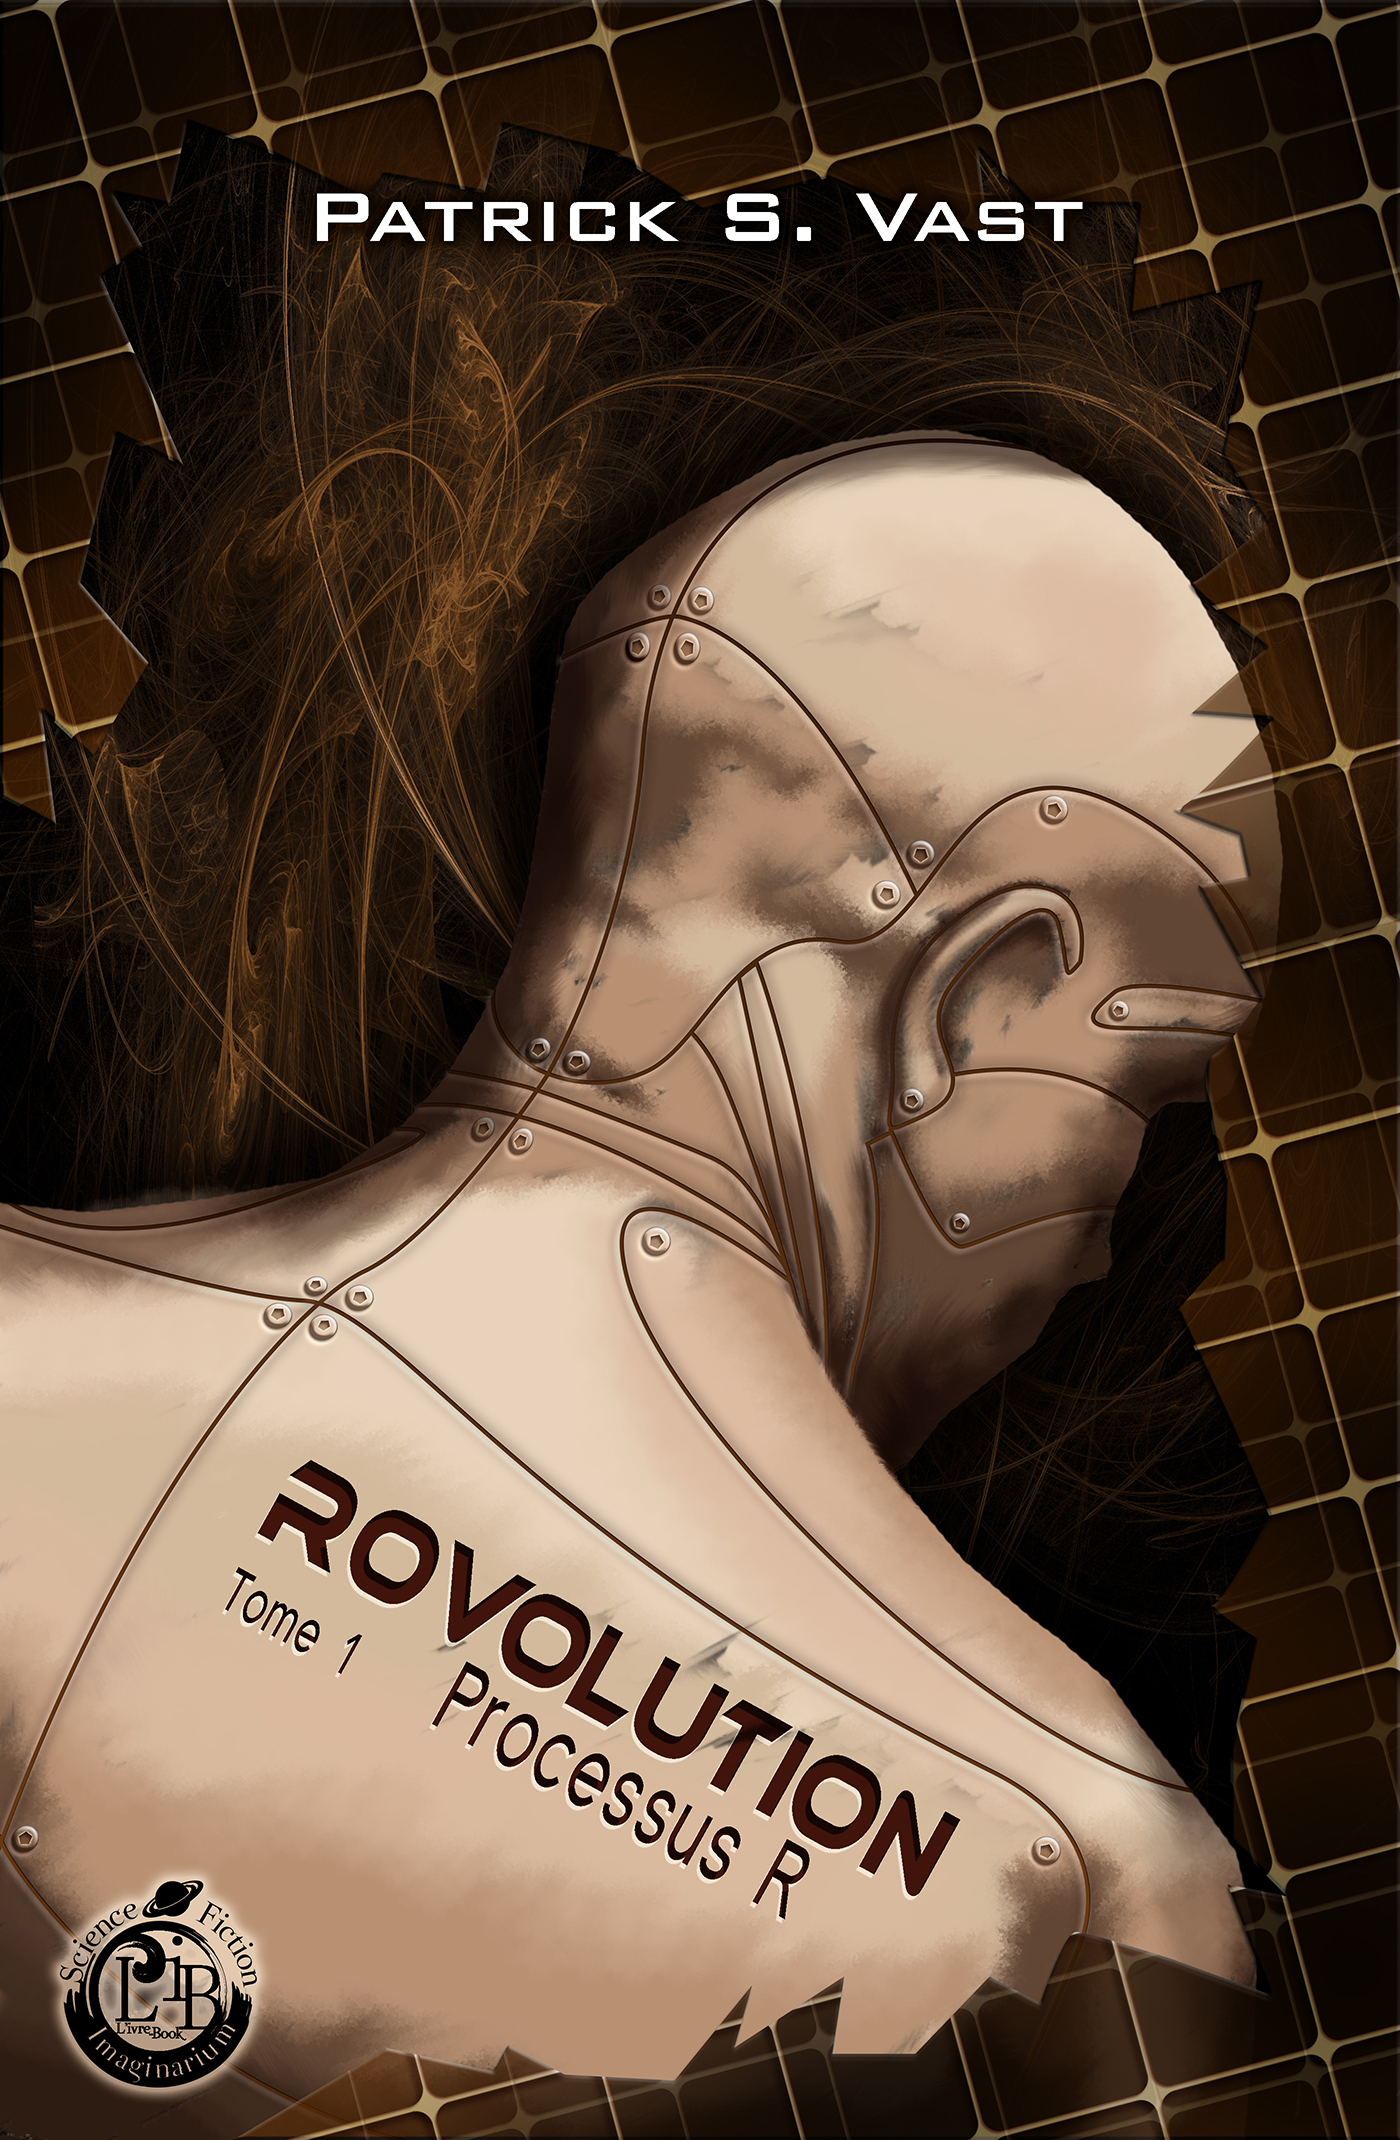 Rovolution, tome 1 - Processus R